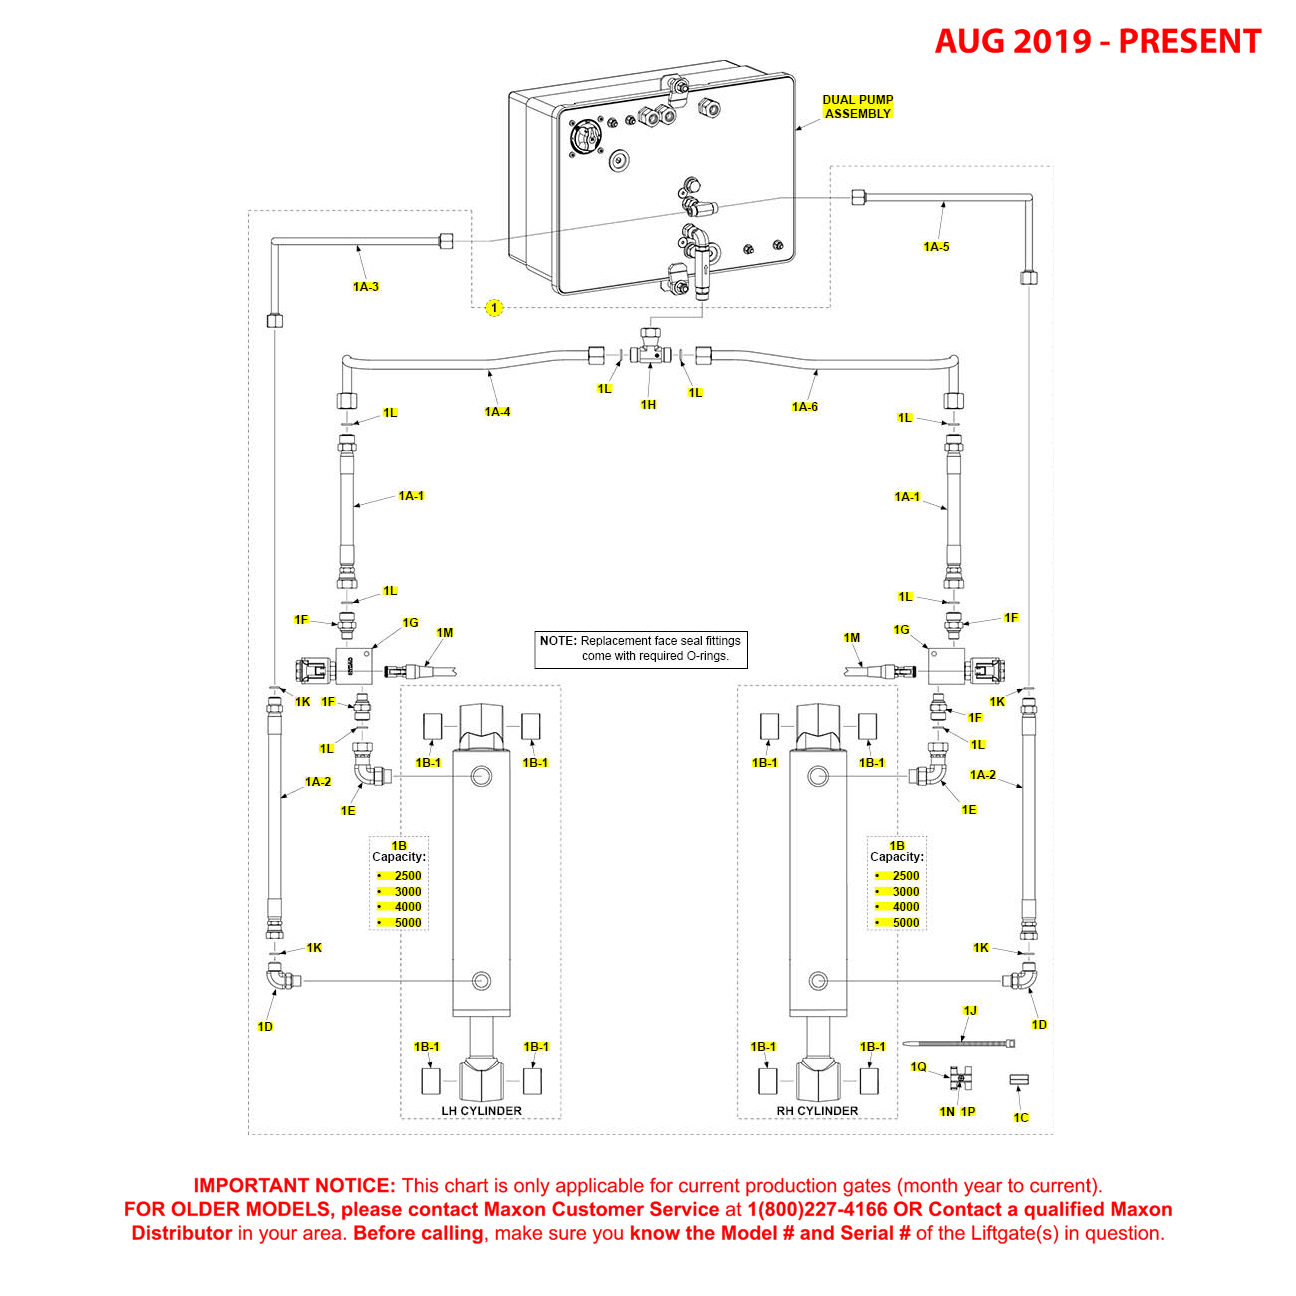 GPT (Aug 2019 - Present) Center Mount Dual Pump Hydraulic Systems Diagram